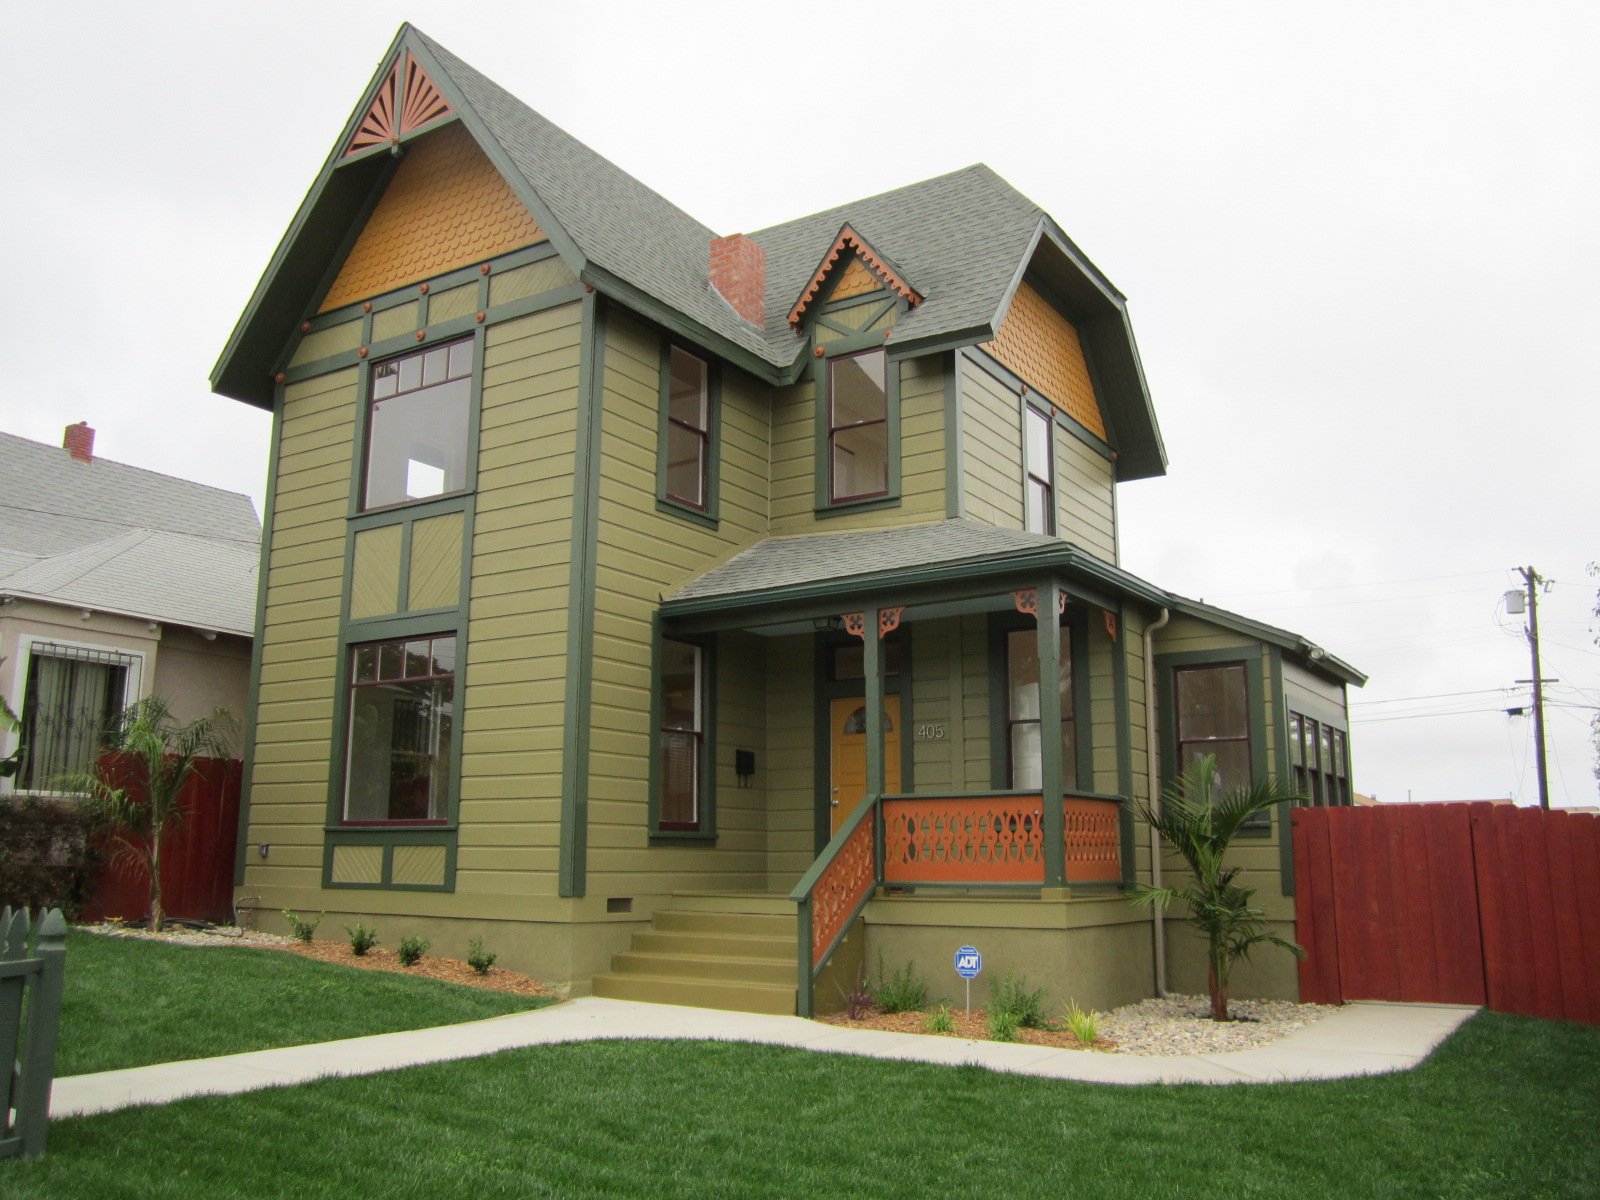 Painted Lady Open House